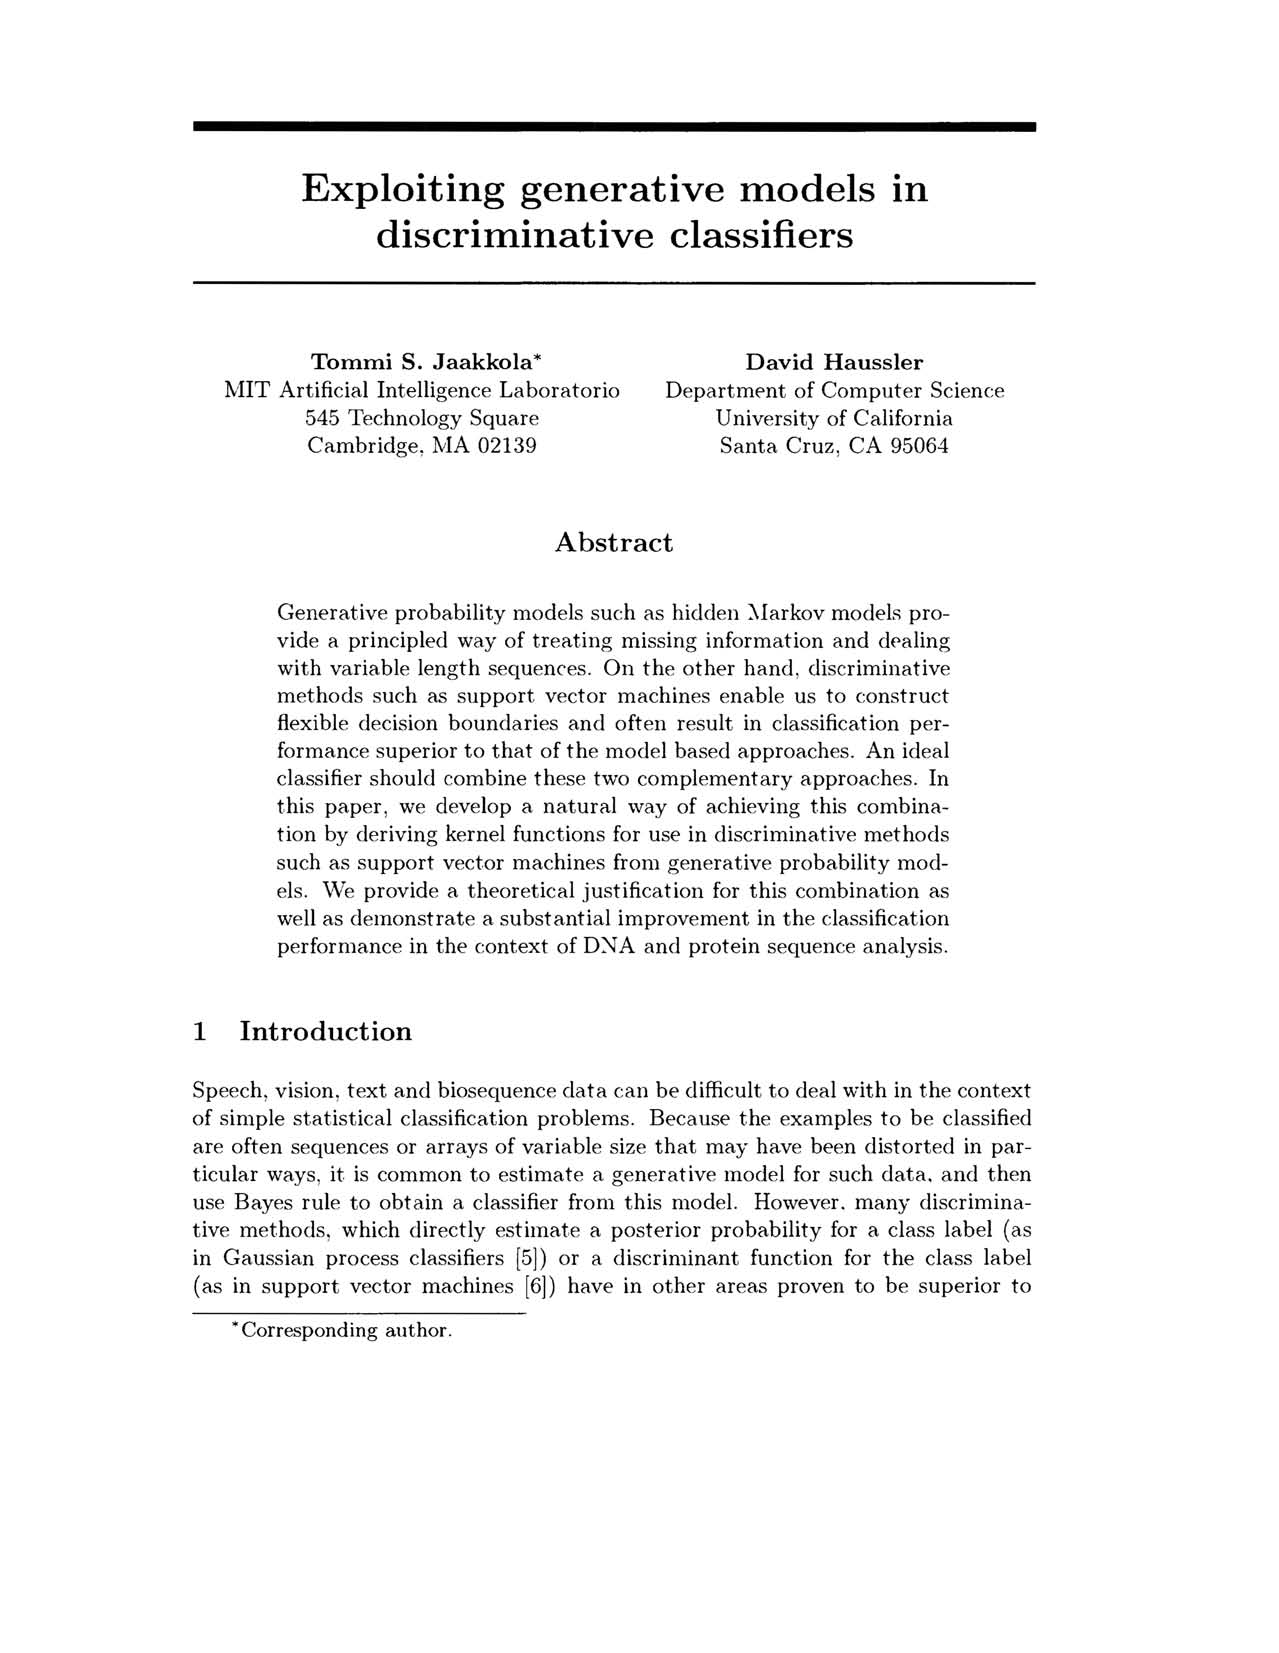 Exploiting generative models discriminative classifiers In Tommi S.